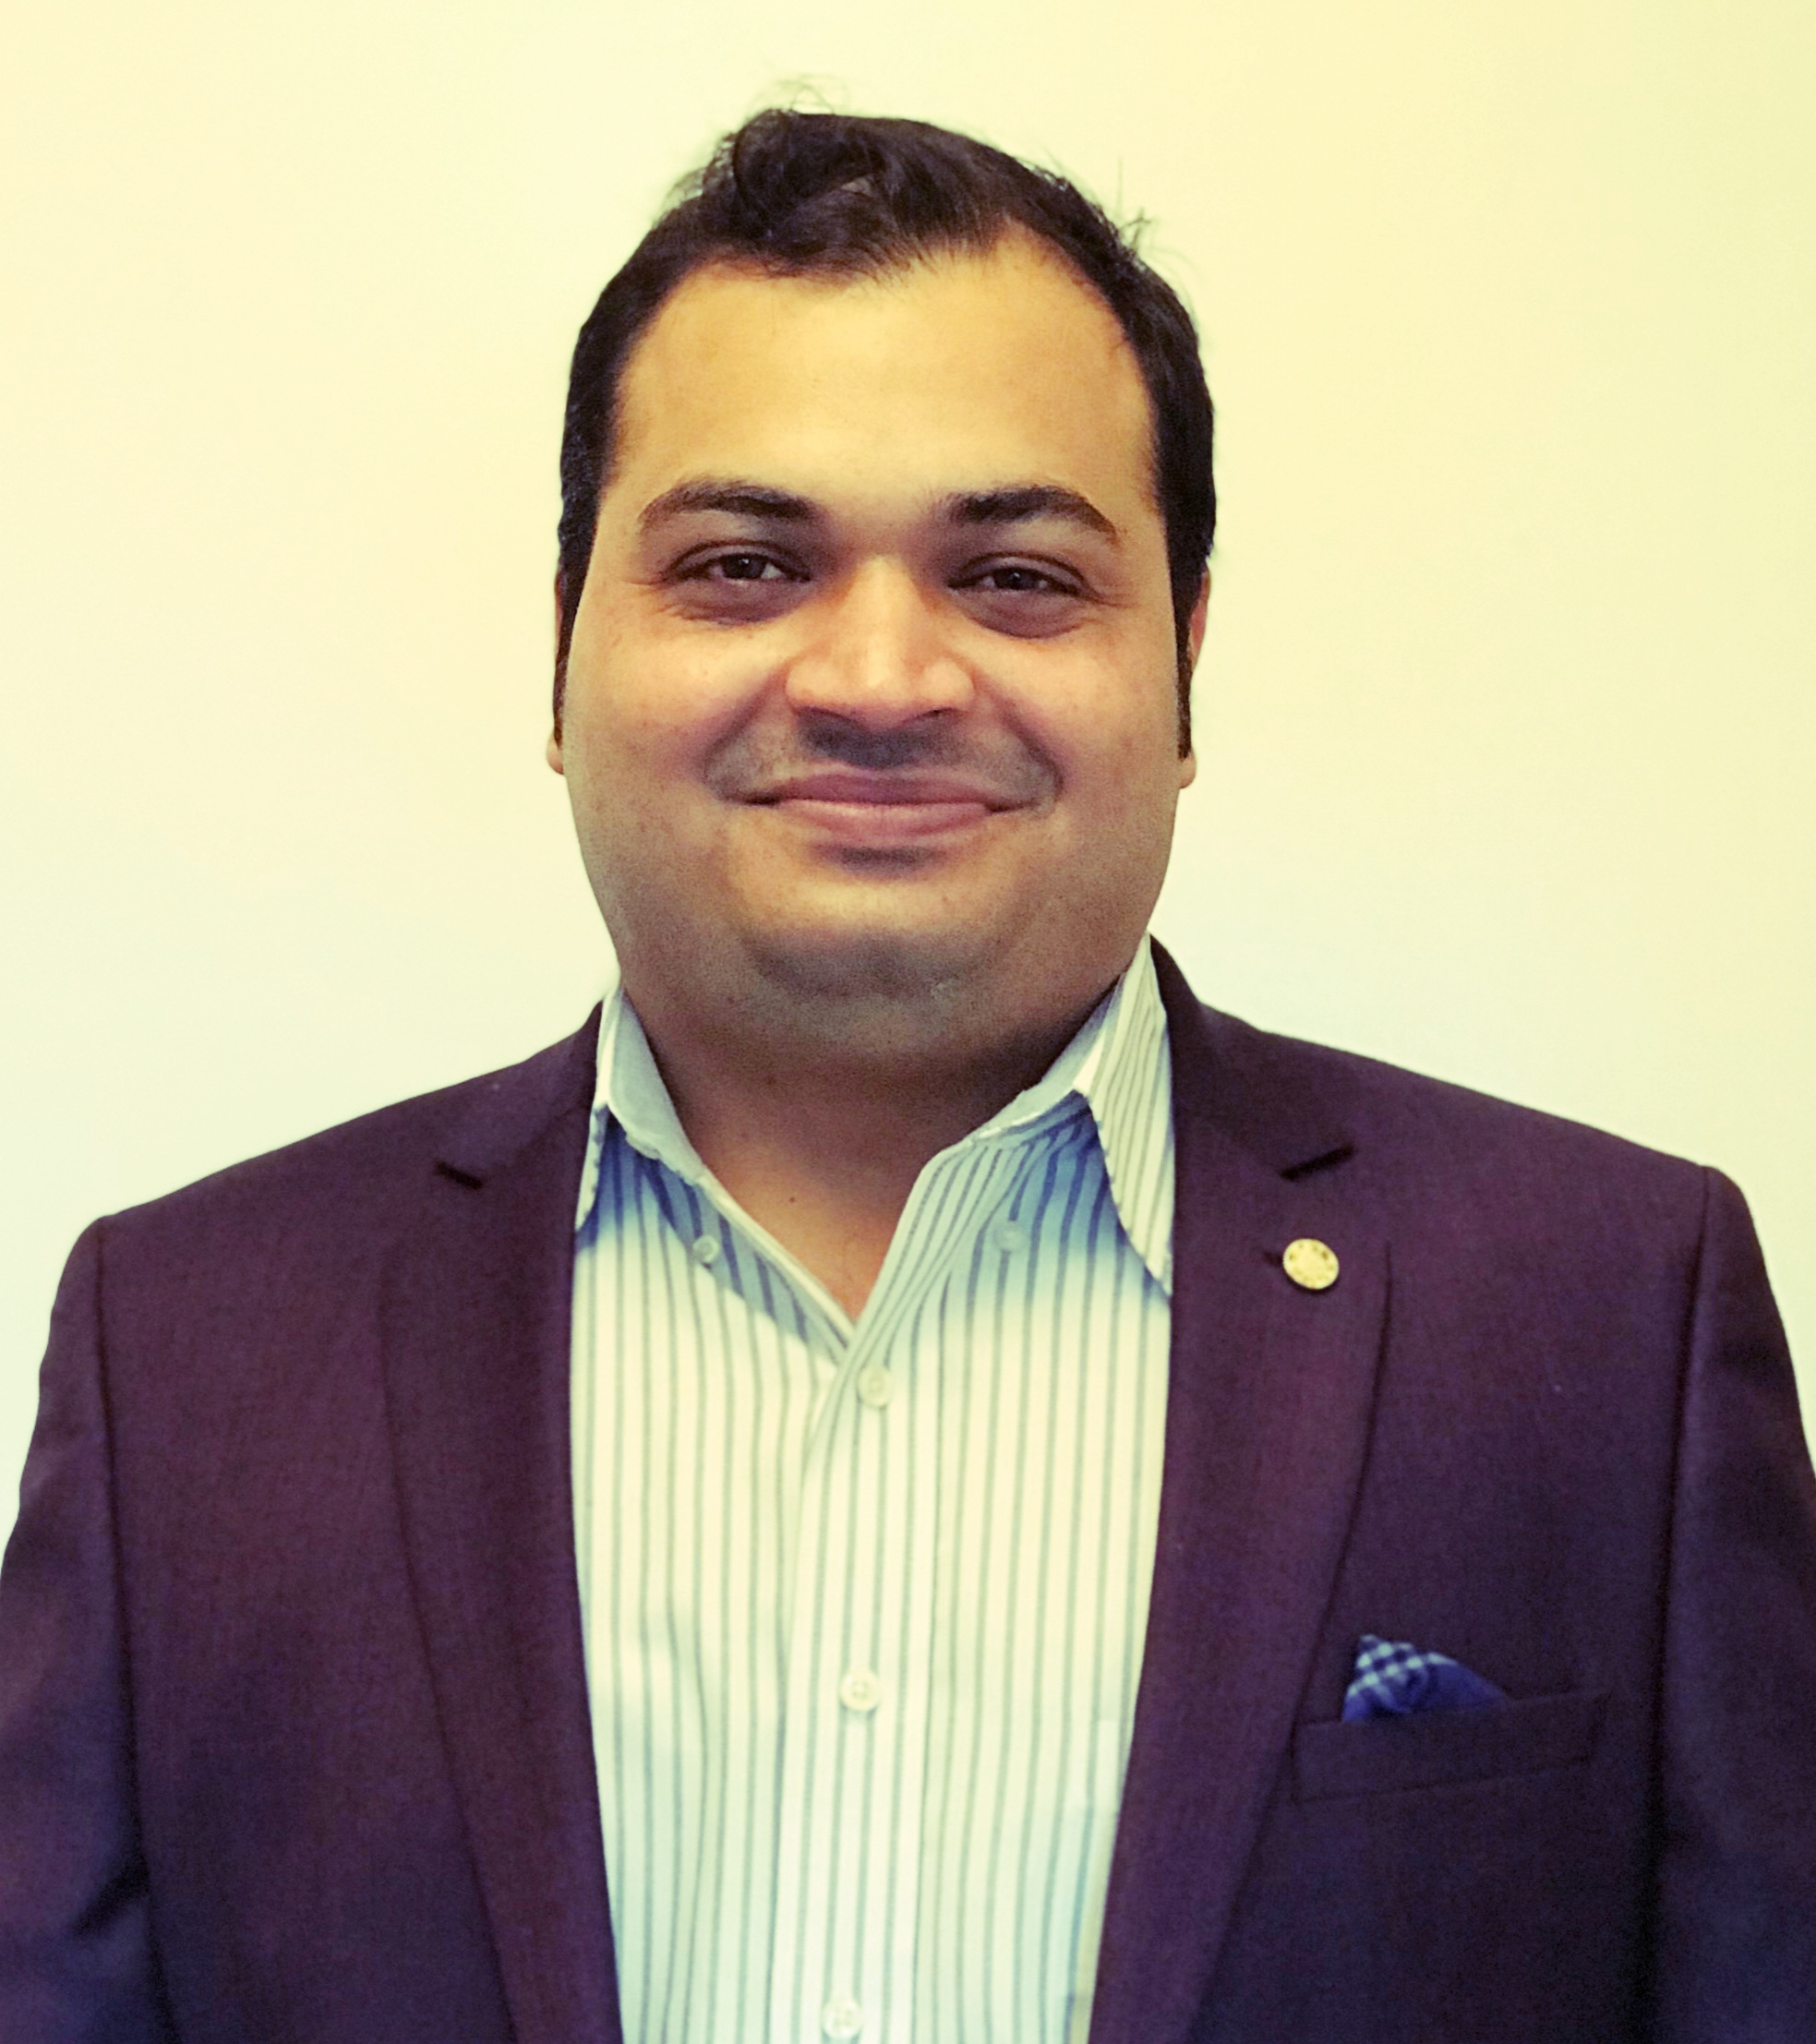 Sanket Jain    Technology sales leader and blockchain enthusiast with over eight years of new business development experience in US & Europe. Acquired new logos and build valuable relationship working with large enterprises selling IT services, consulting & staffing services. Relationship and result oriented with sizable client relationships in US.